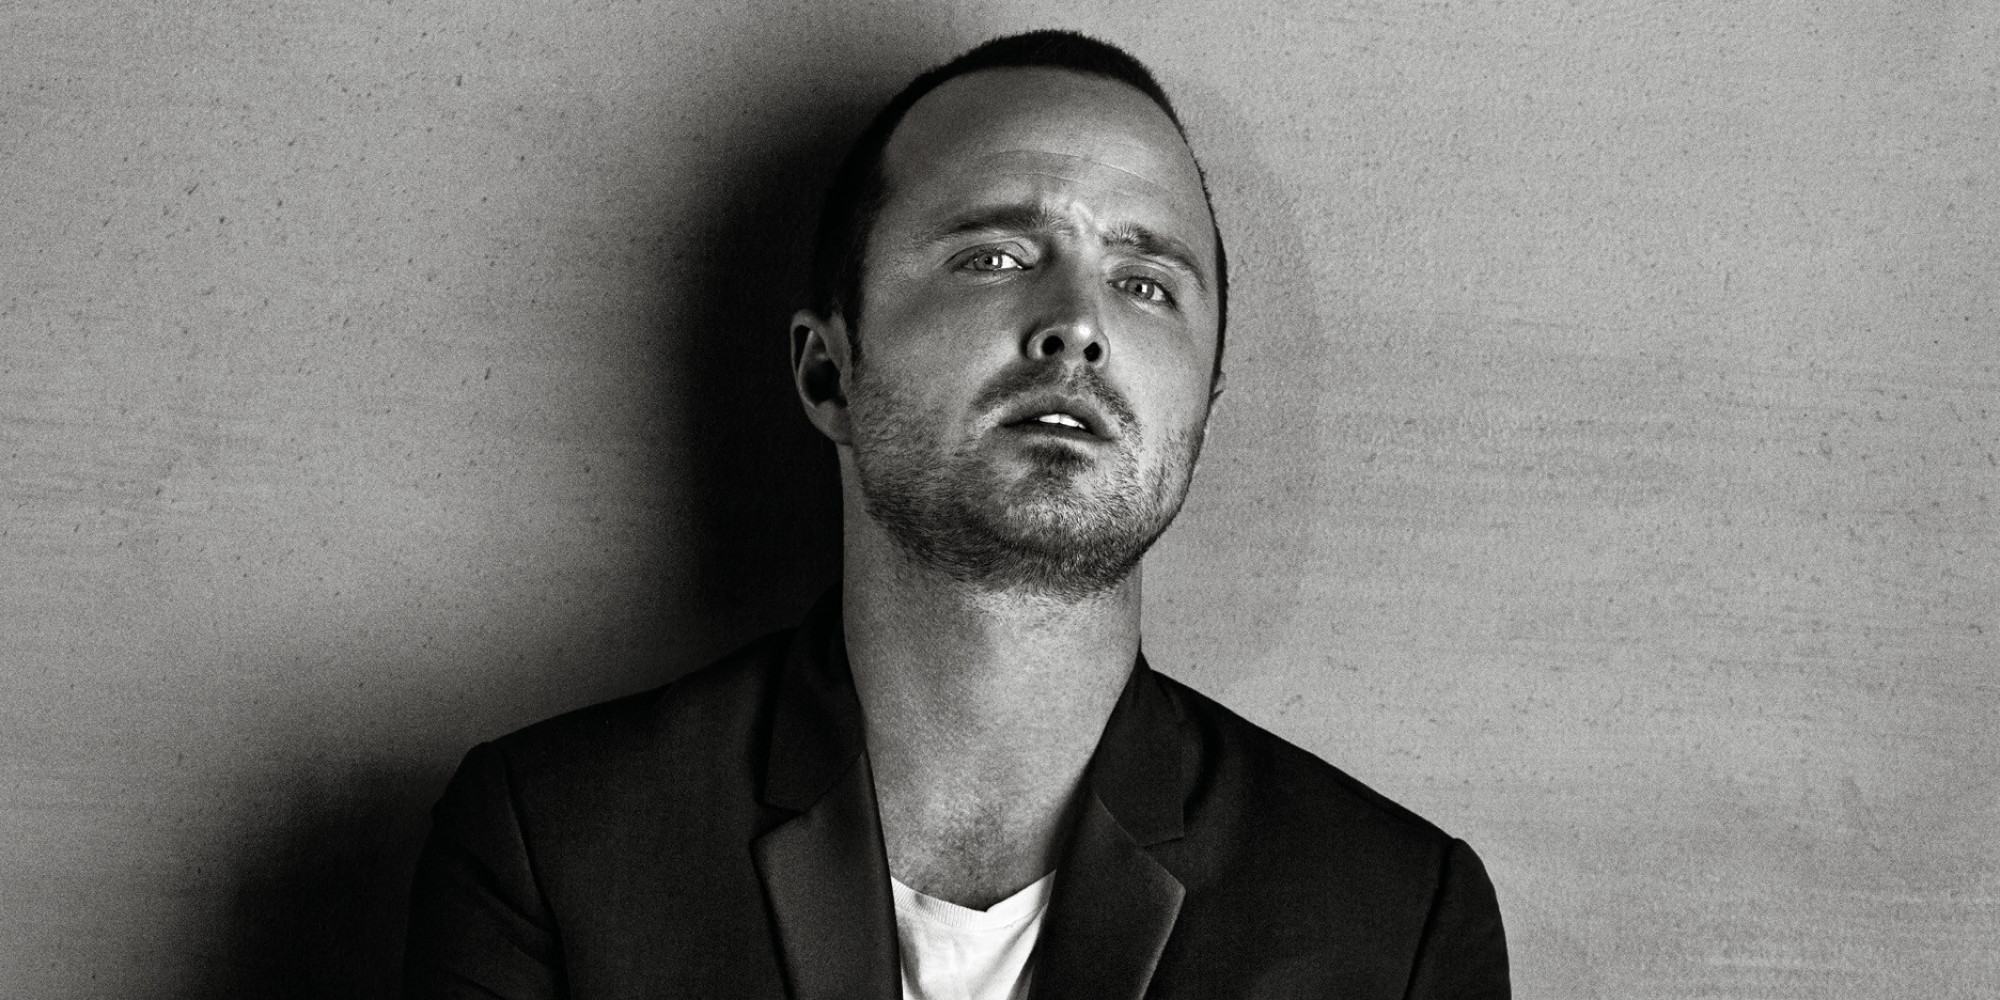 Aaron Paul On Better Call Saul Both Bryan And I Want